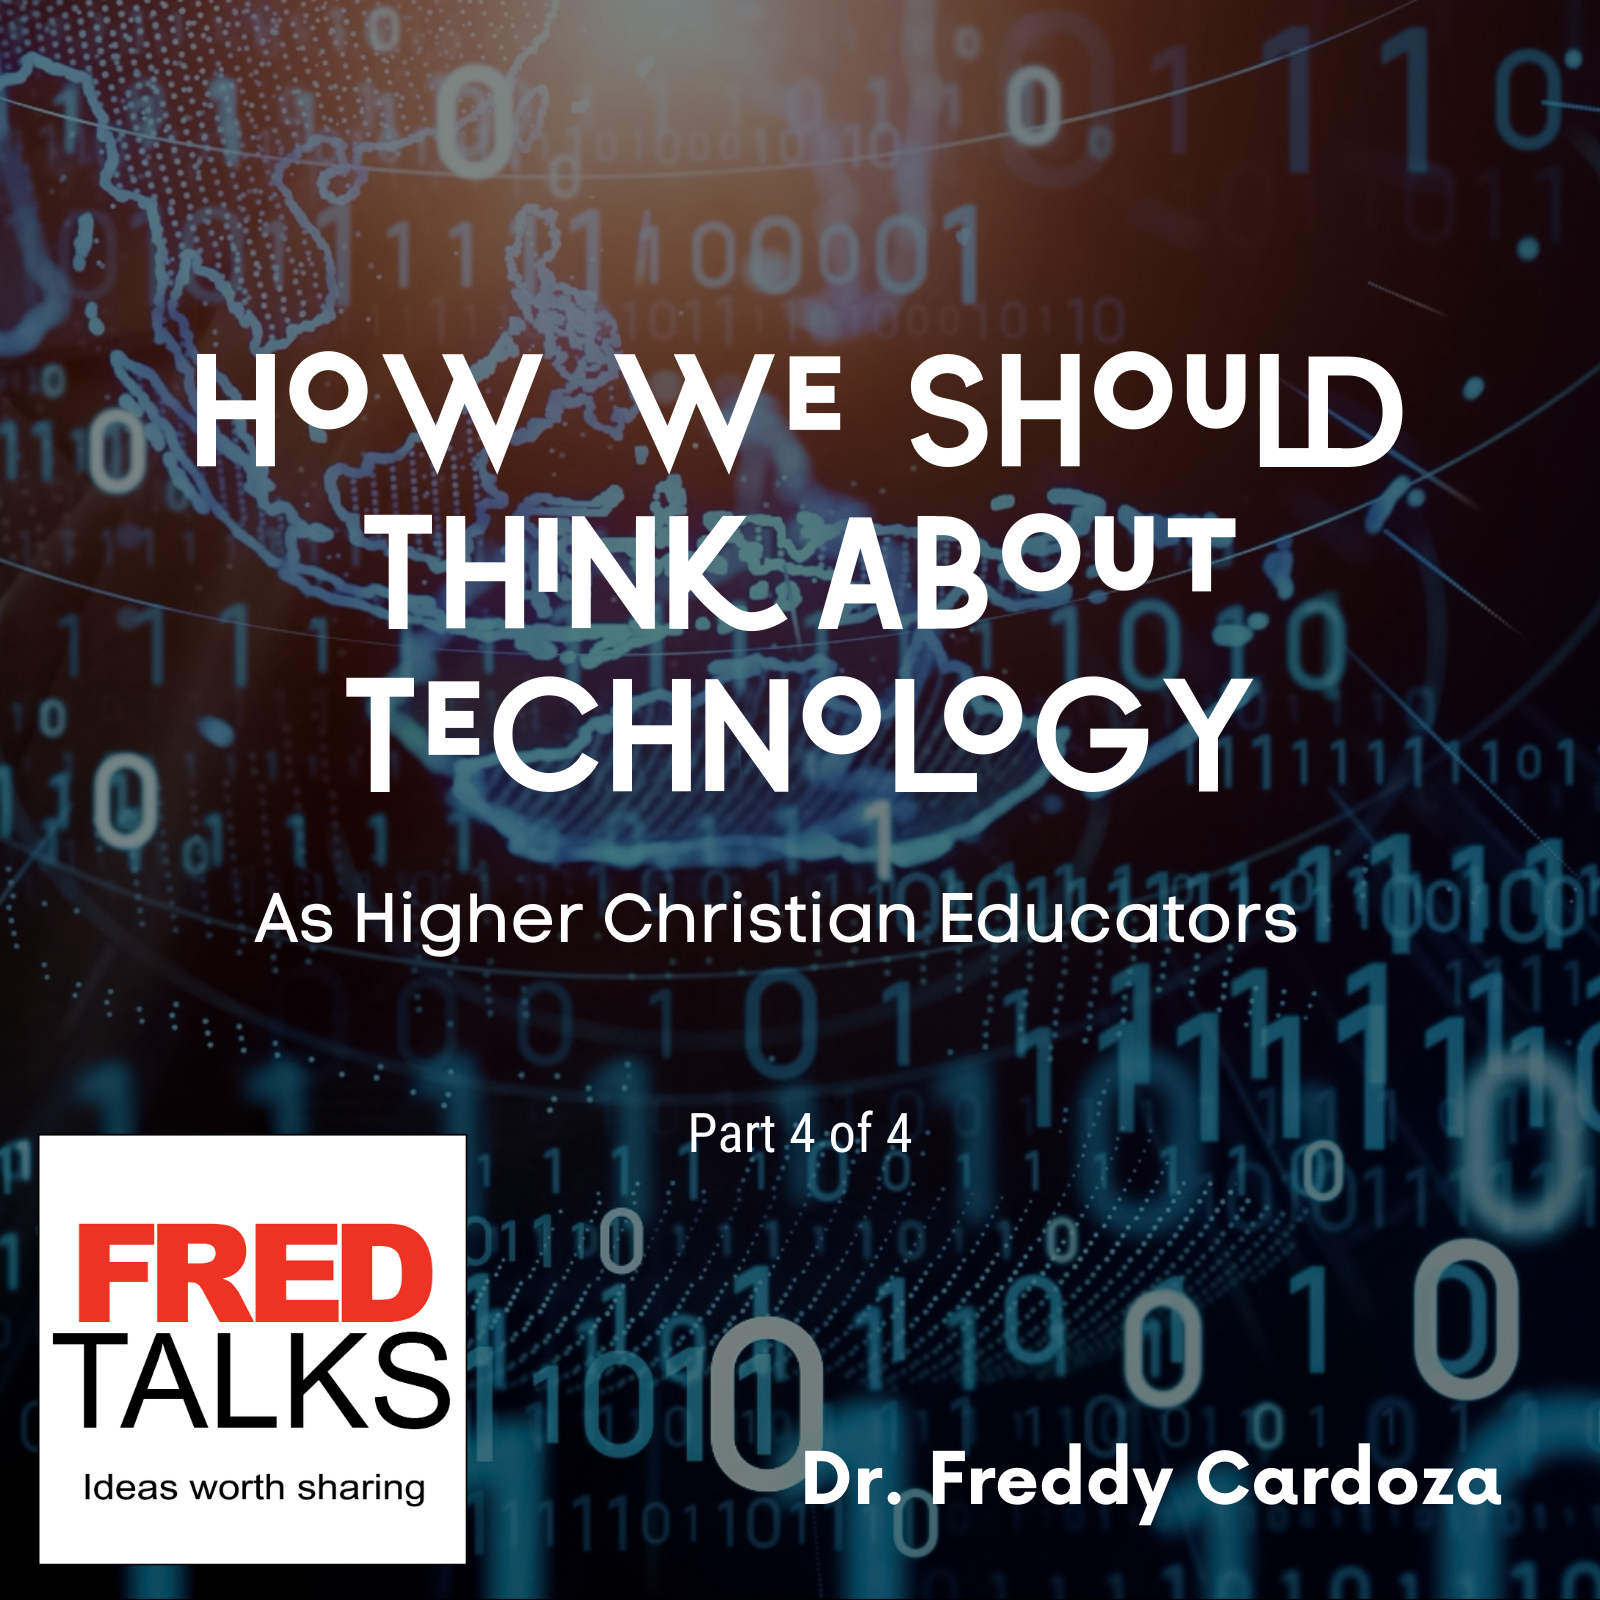 How We Should Think About Technology as Christian Higher Educators